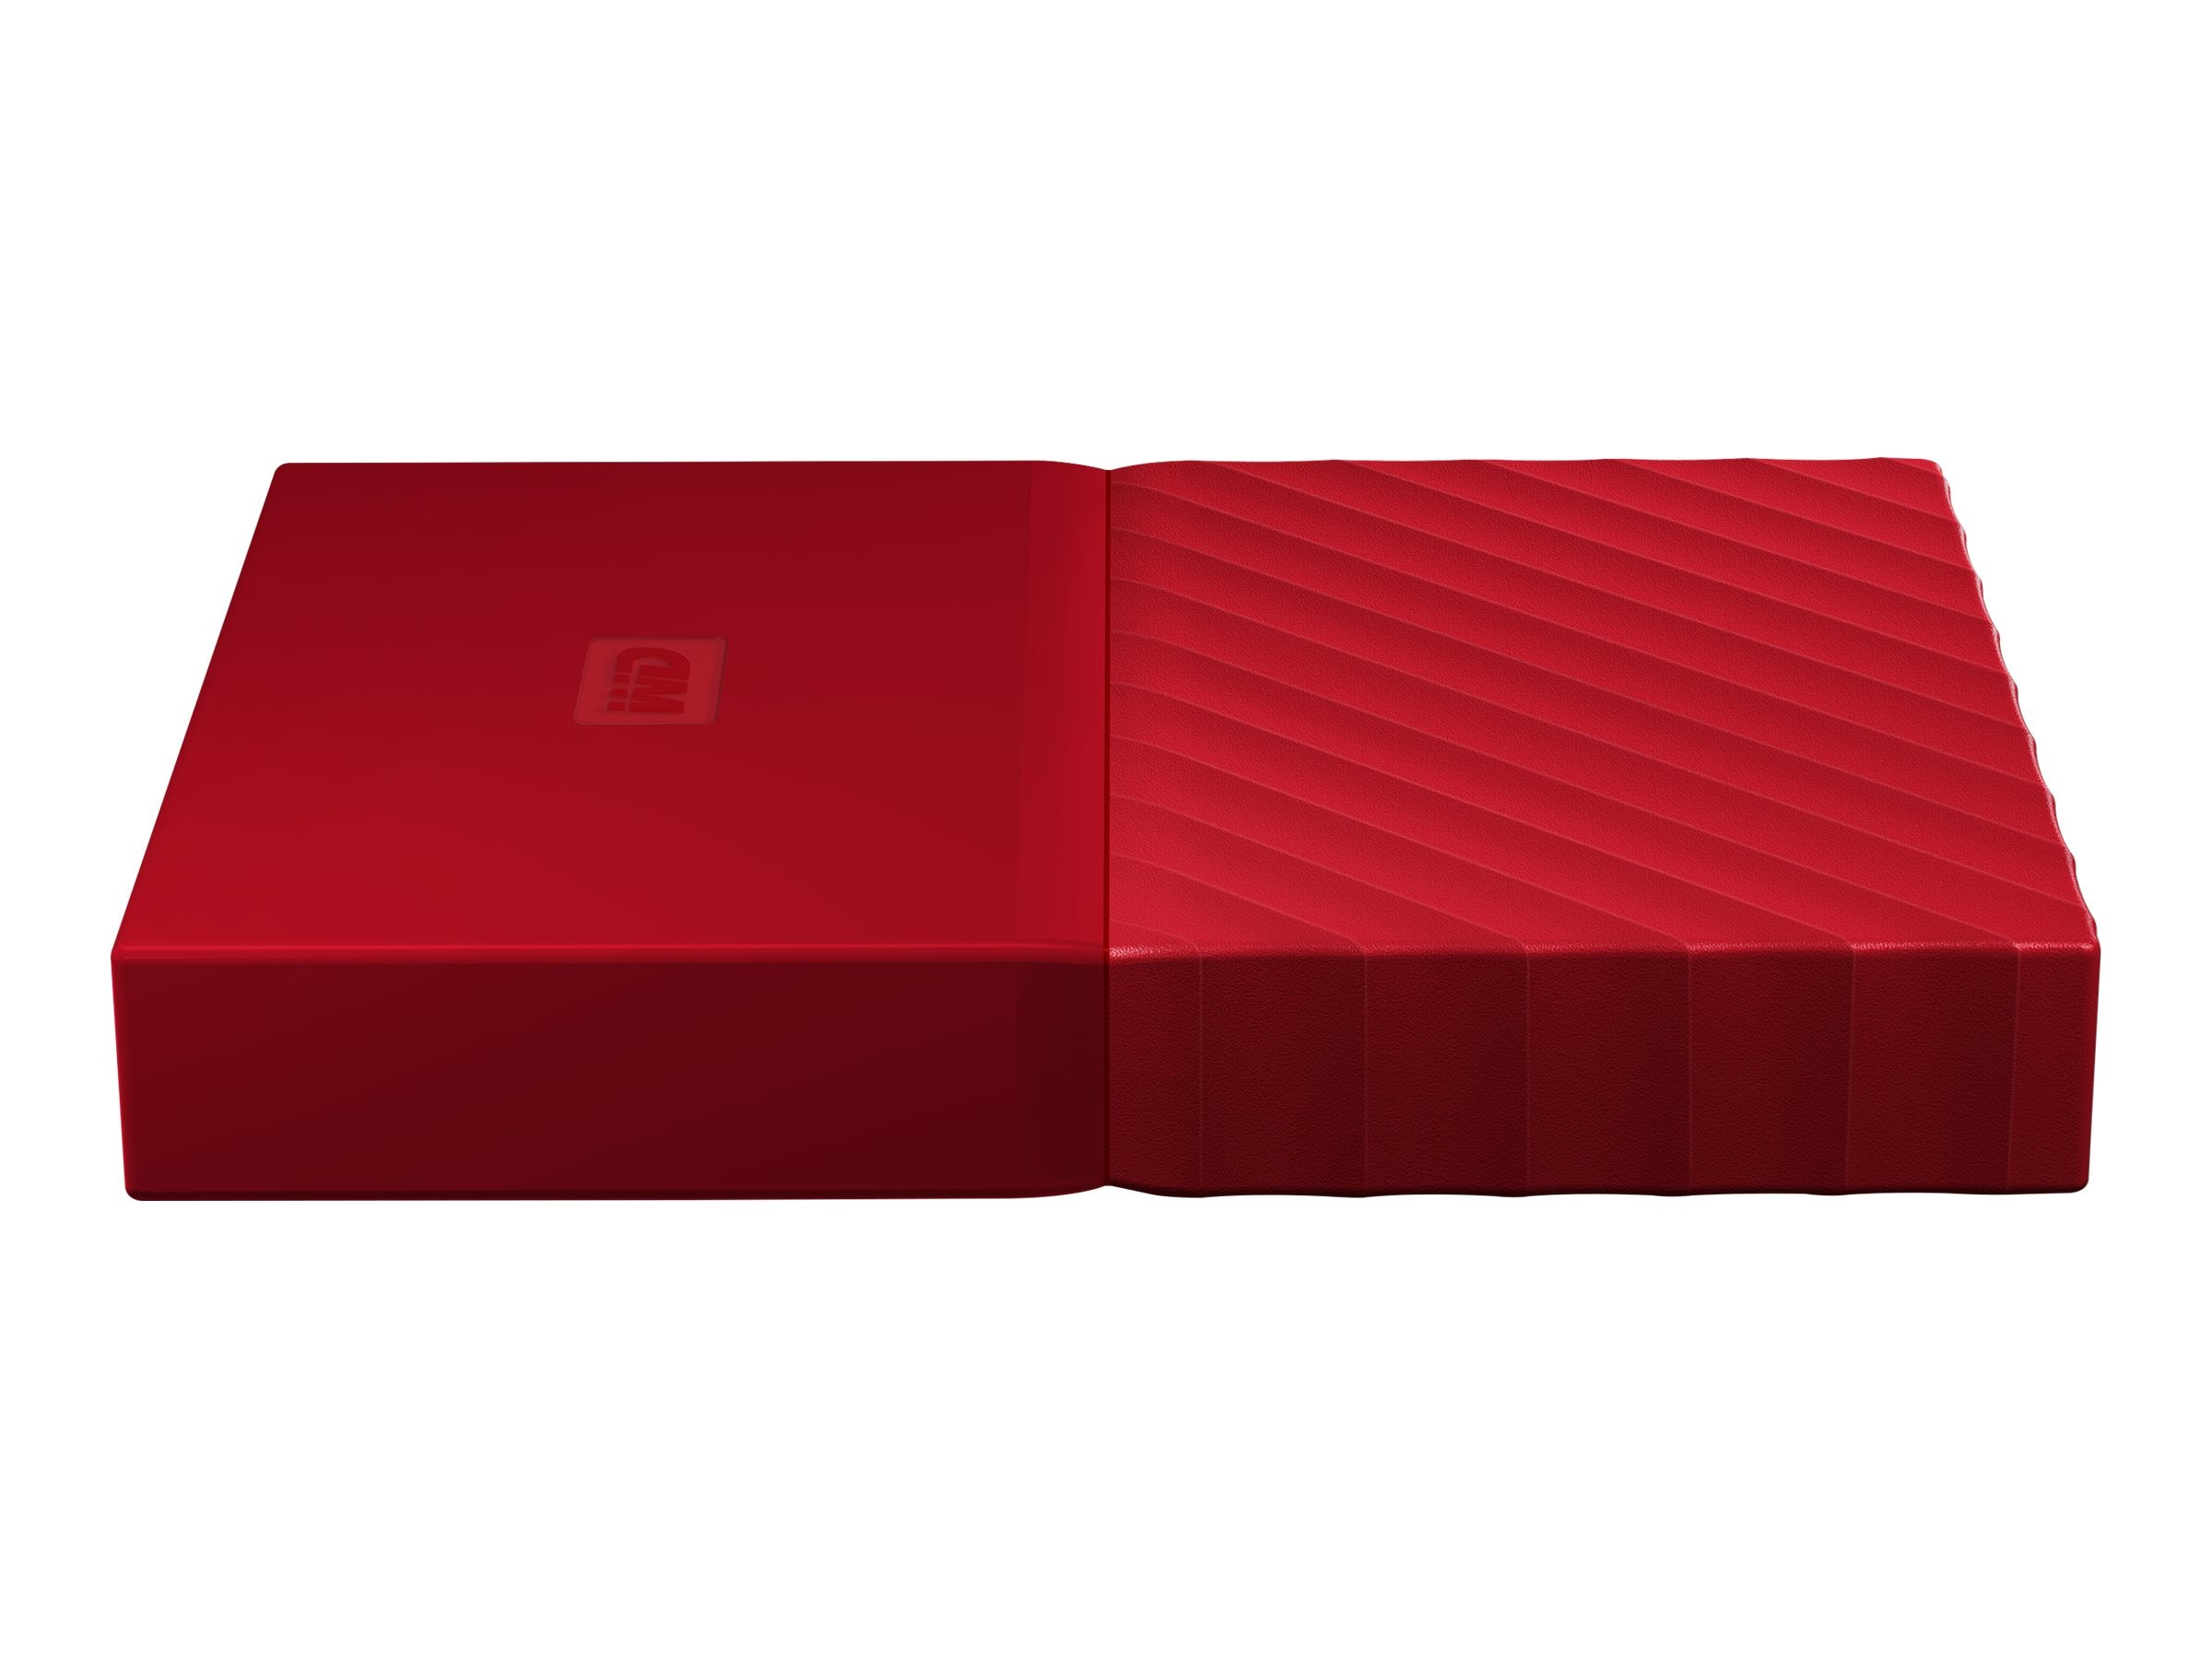 WD 1TB My Passport USB 3.0 Portable Hard Drive - Red, WDBYNN0010BRD-WESN